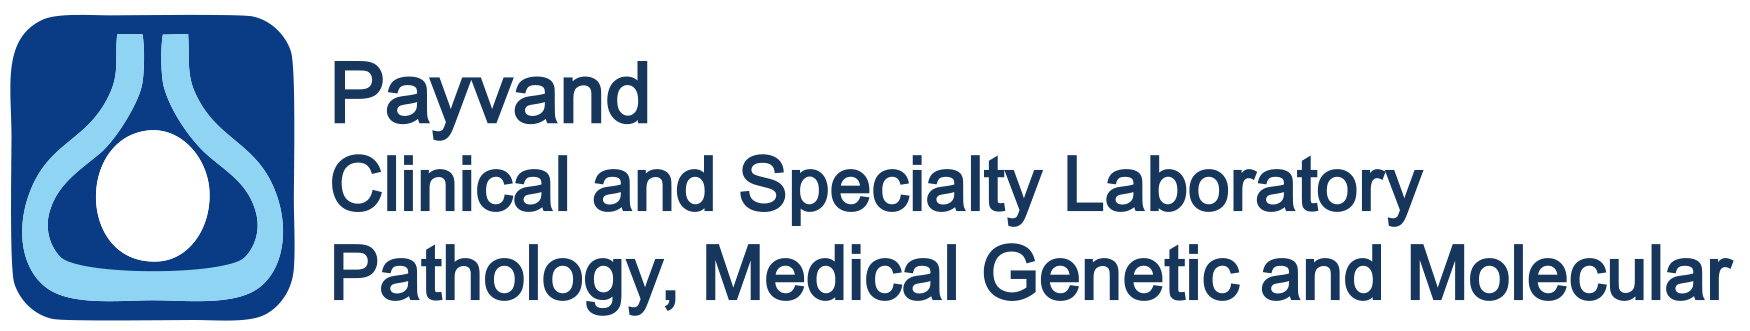 Payvand Clinical and Specialty Laboratory Pathology, Medical Genetic and Molecular